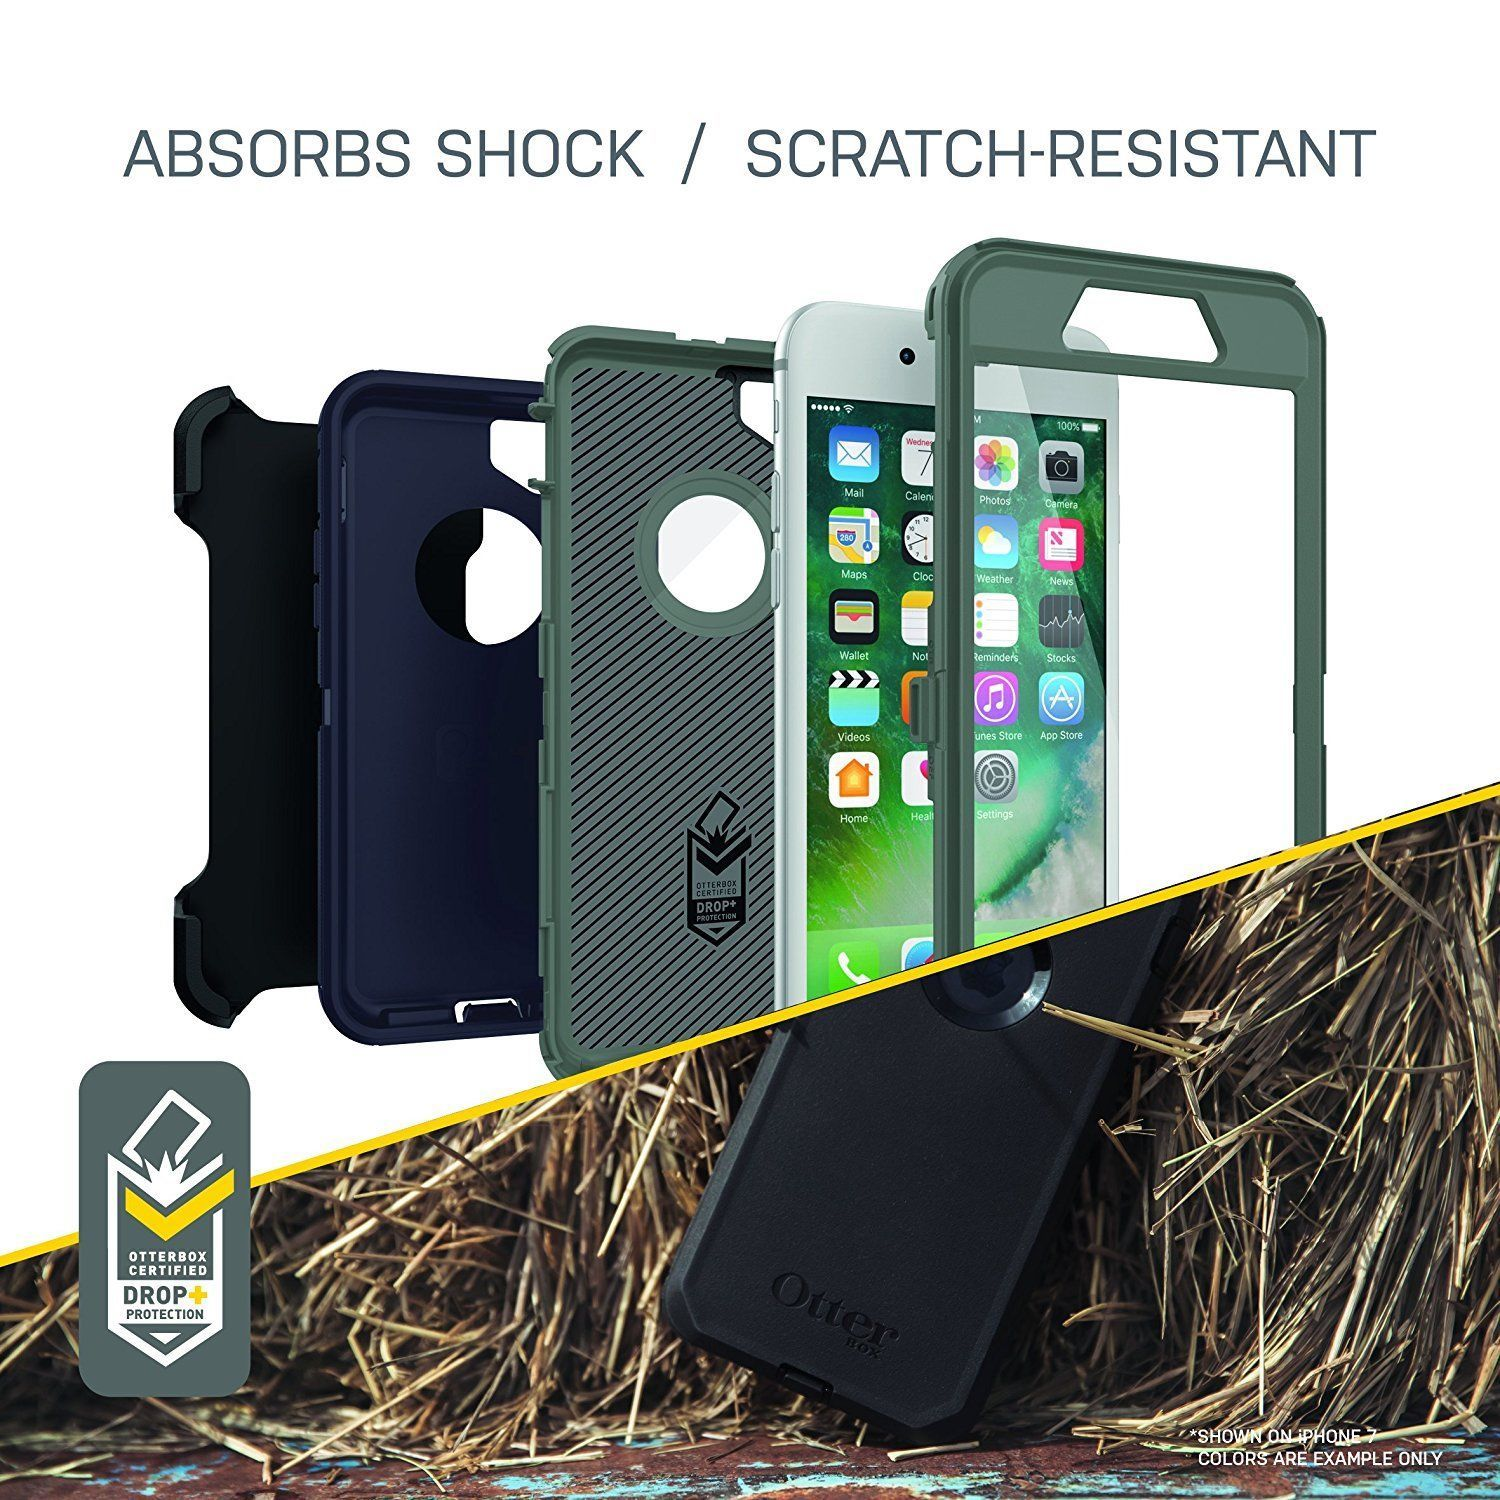 Authentic Original Otterbox Defender Series For iPhone 8 Plus and iPhone 7 Plus